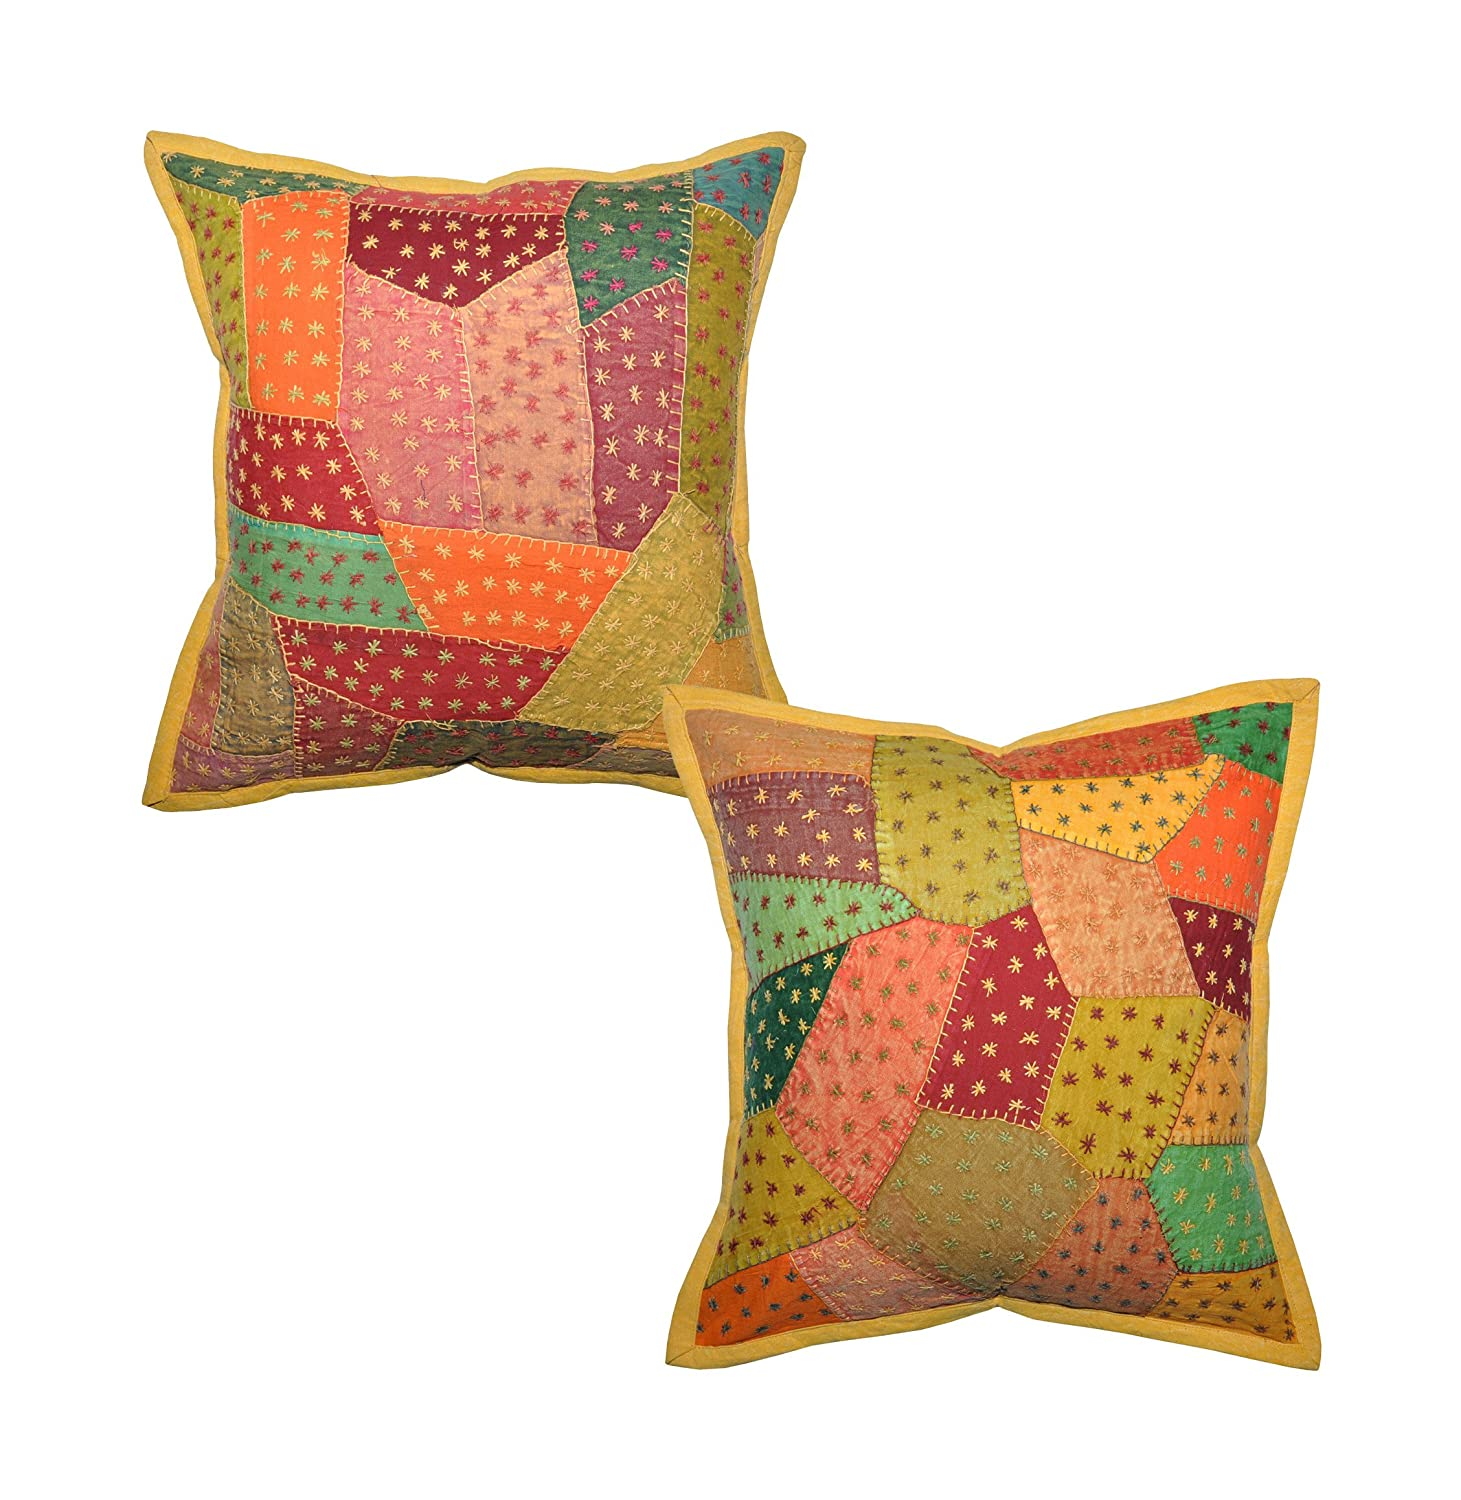 2 Traditional Indian Cotton Cushion Pillow Cover With Embroidery & Patchwork 16